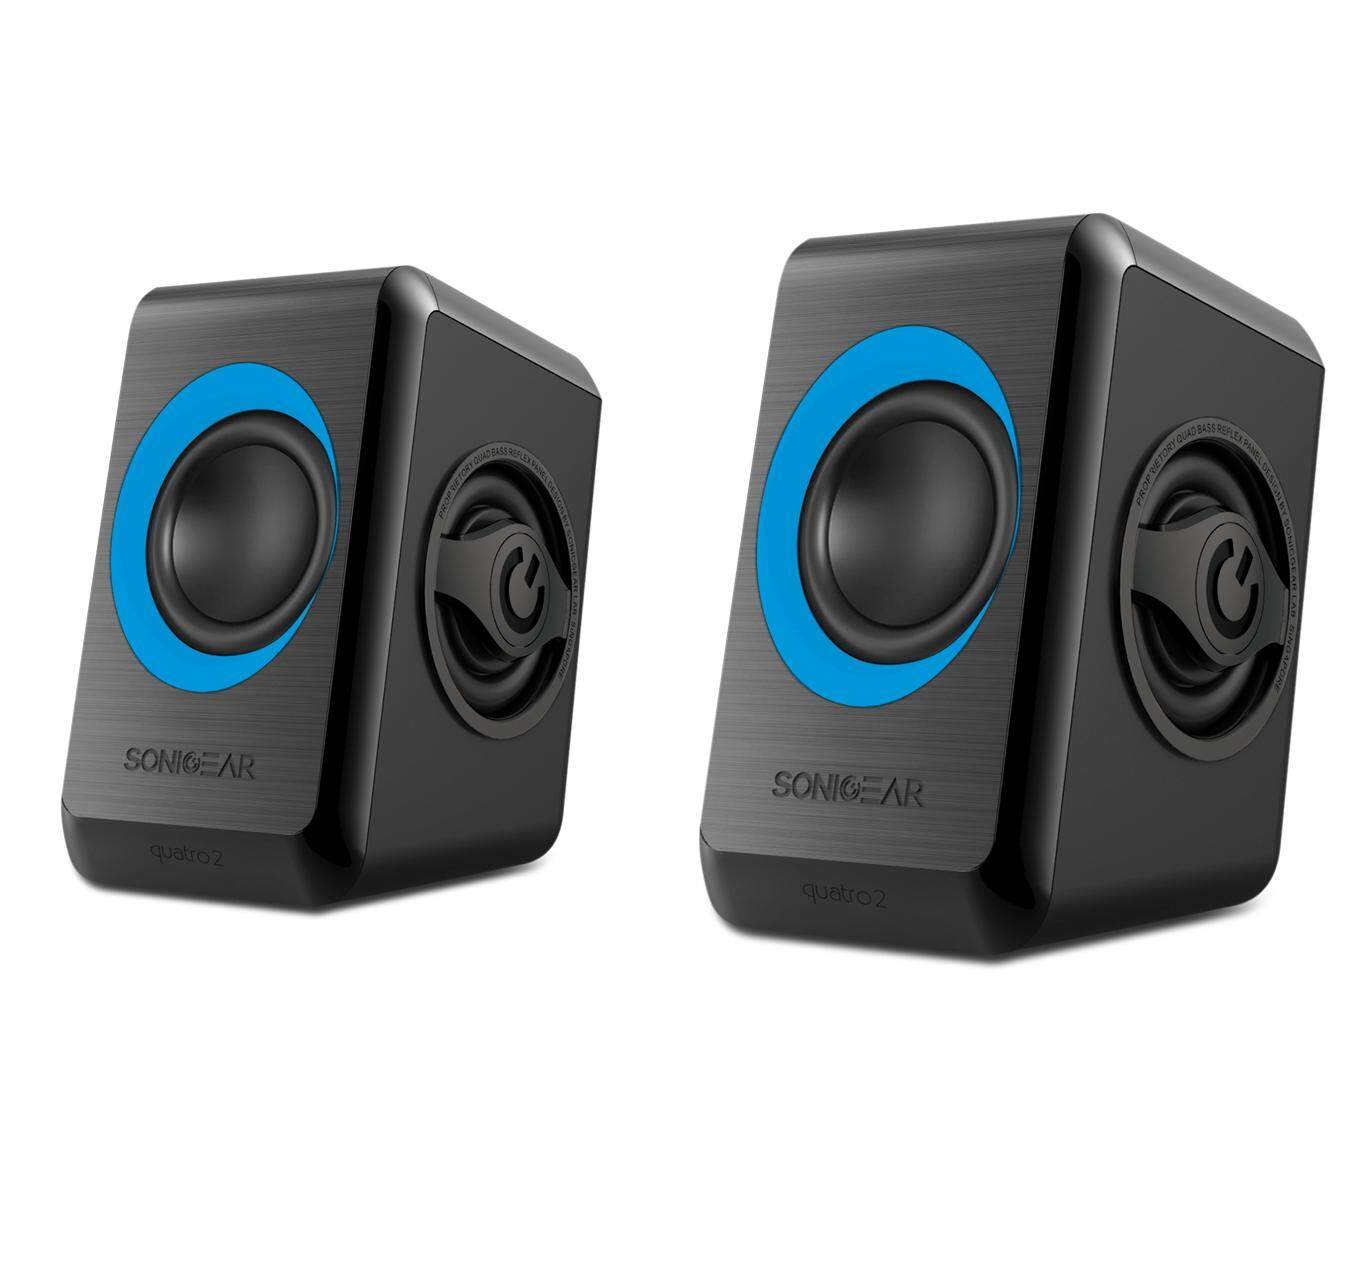 Sonic Gear Quatro 2 Stereo Speakers 2.0 with Quad Bass (USB Powered, Blue Version, 1 Year Warranty)